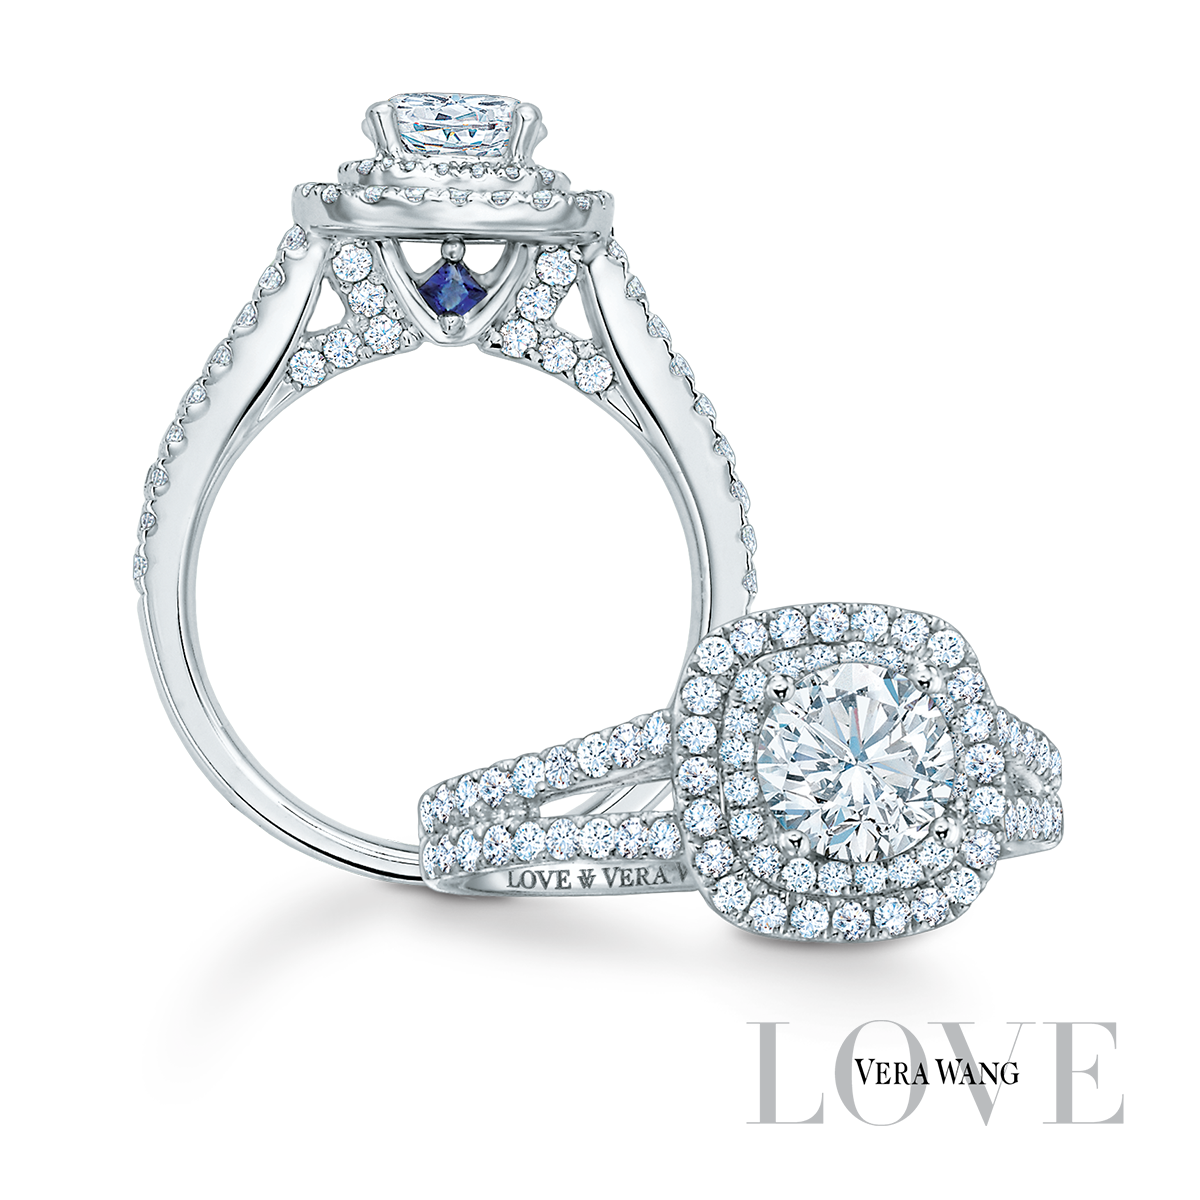 The Vera Wang LOVE Collection exclusively at Zales Each timeless